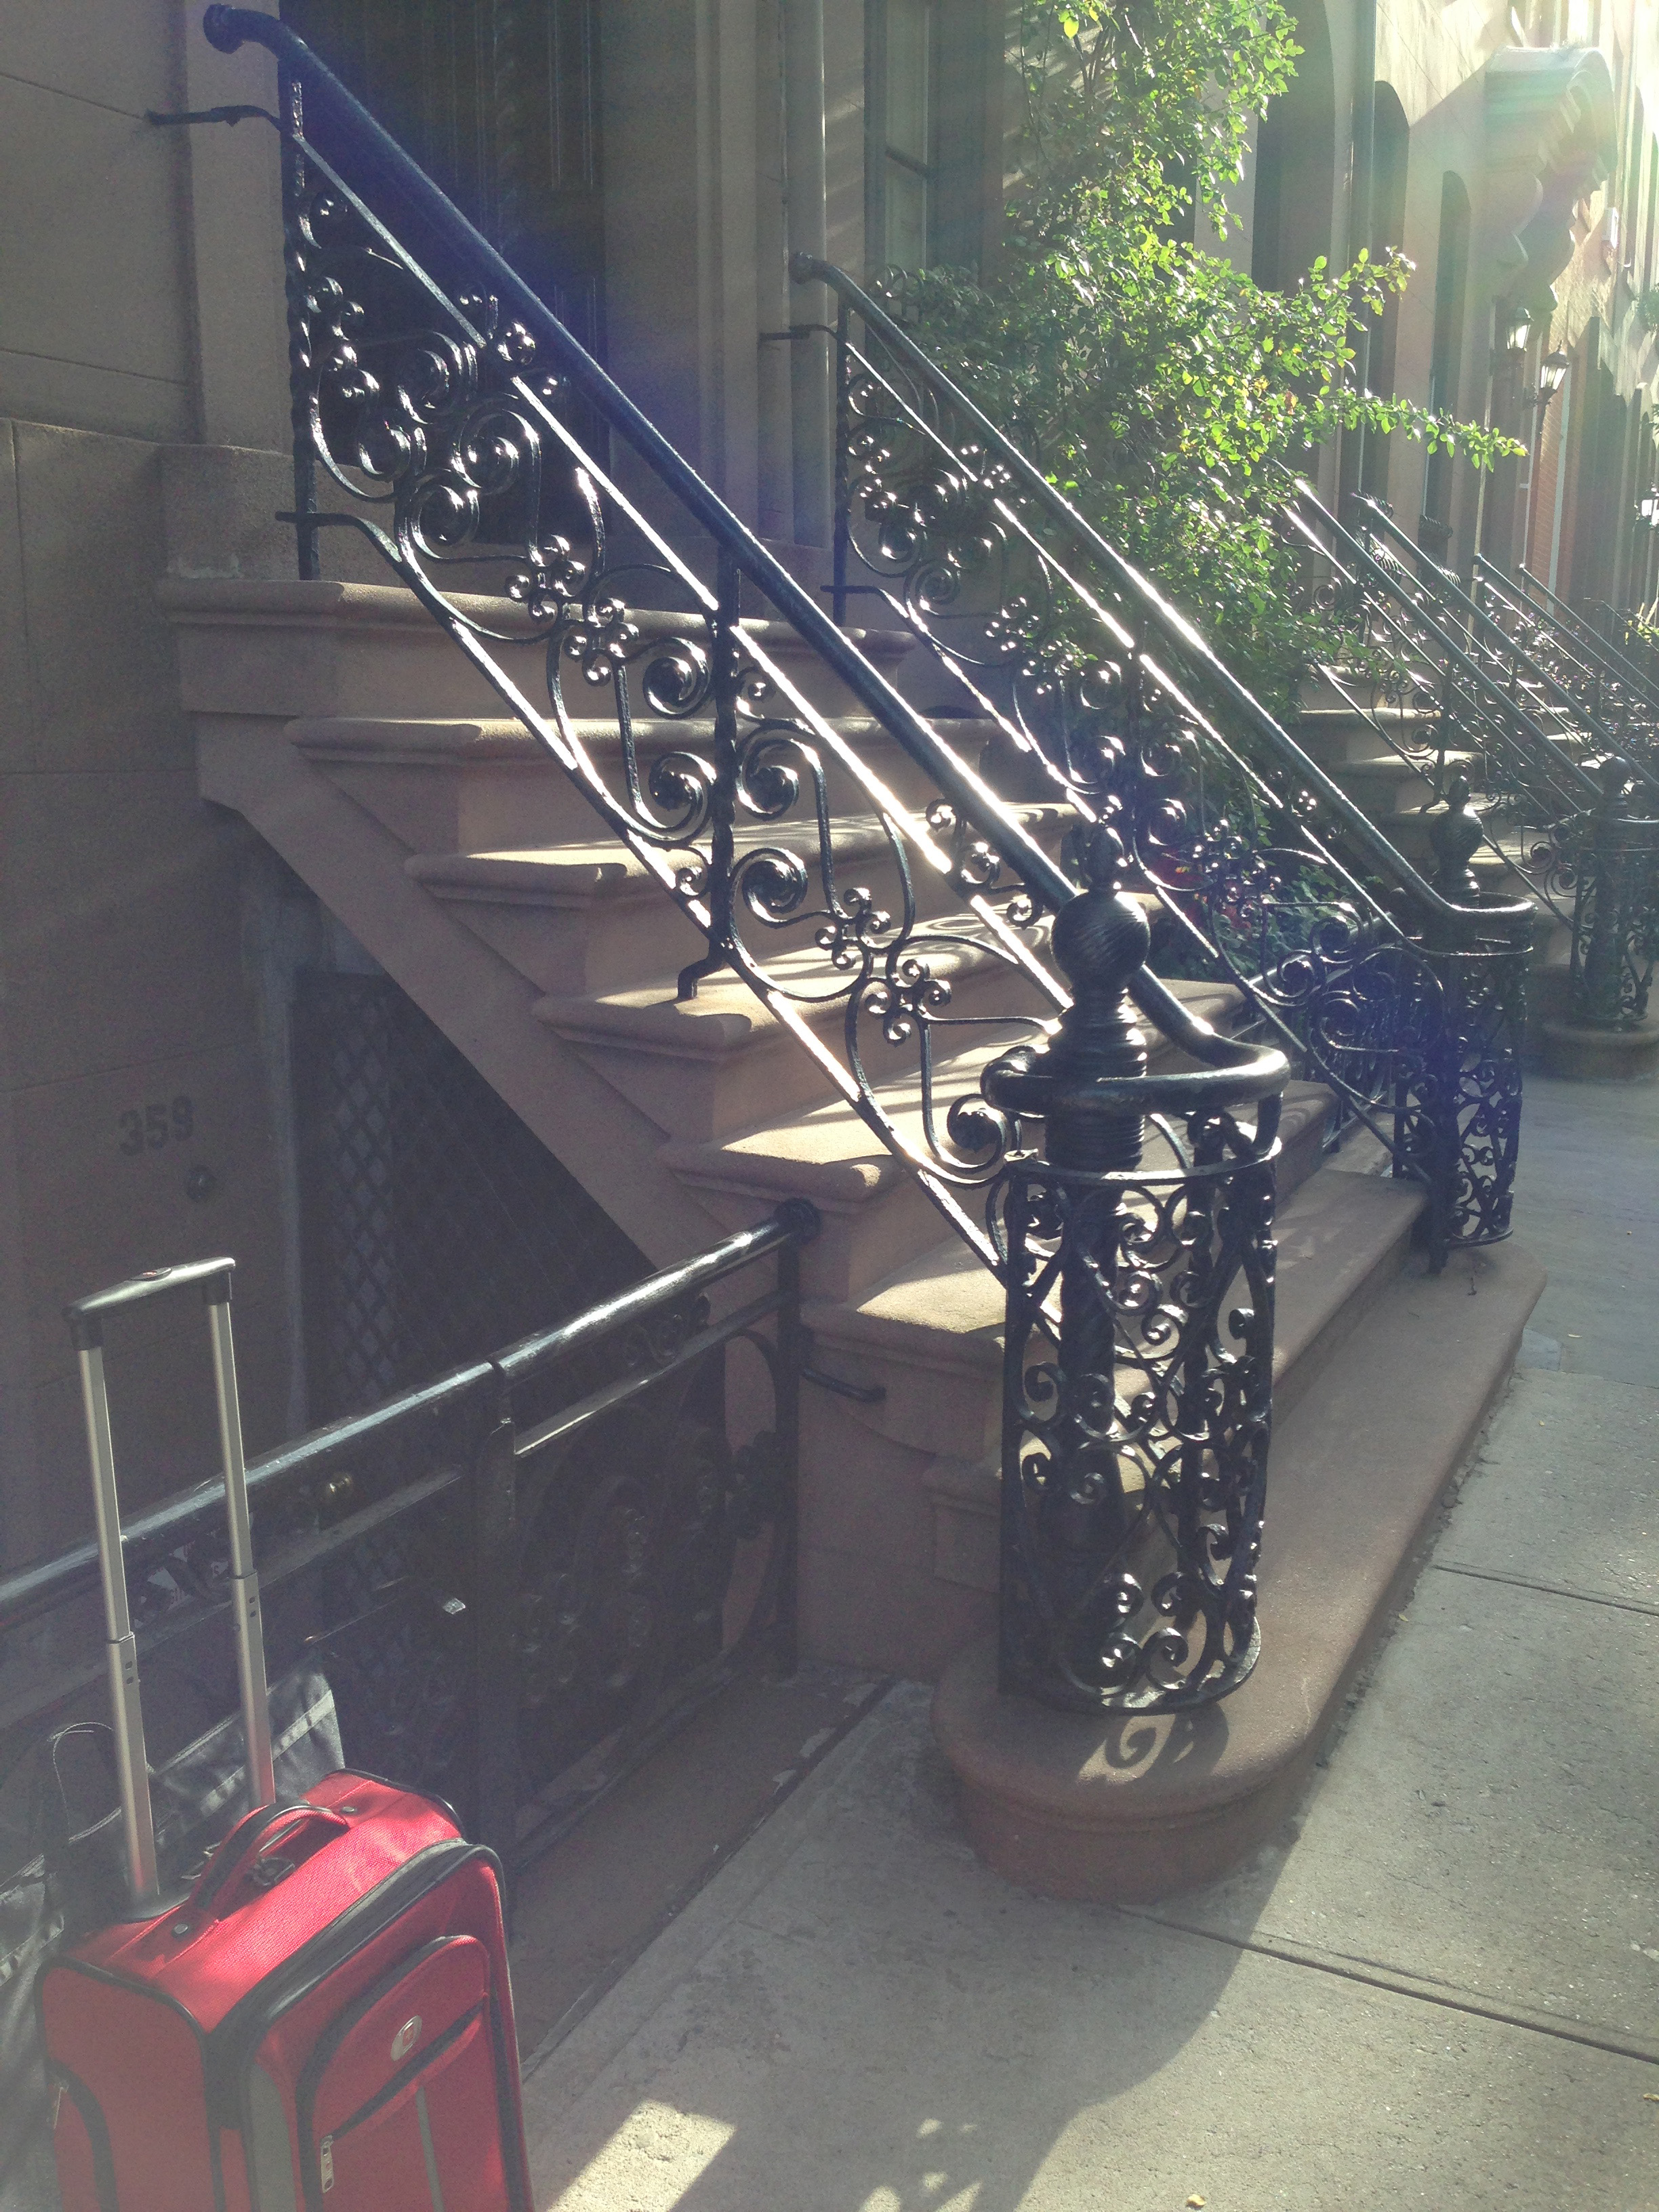 photo of New York City stoops and iron deco bannisters